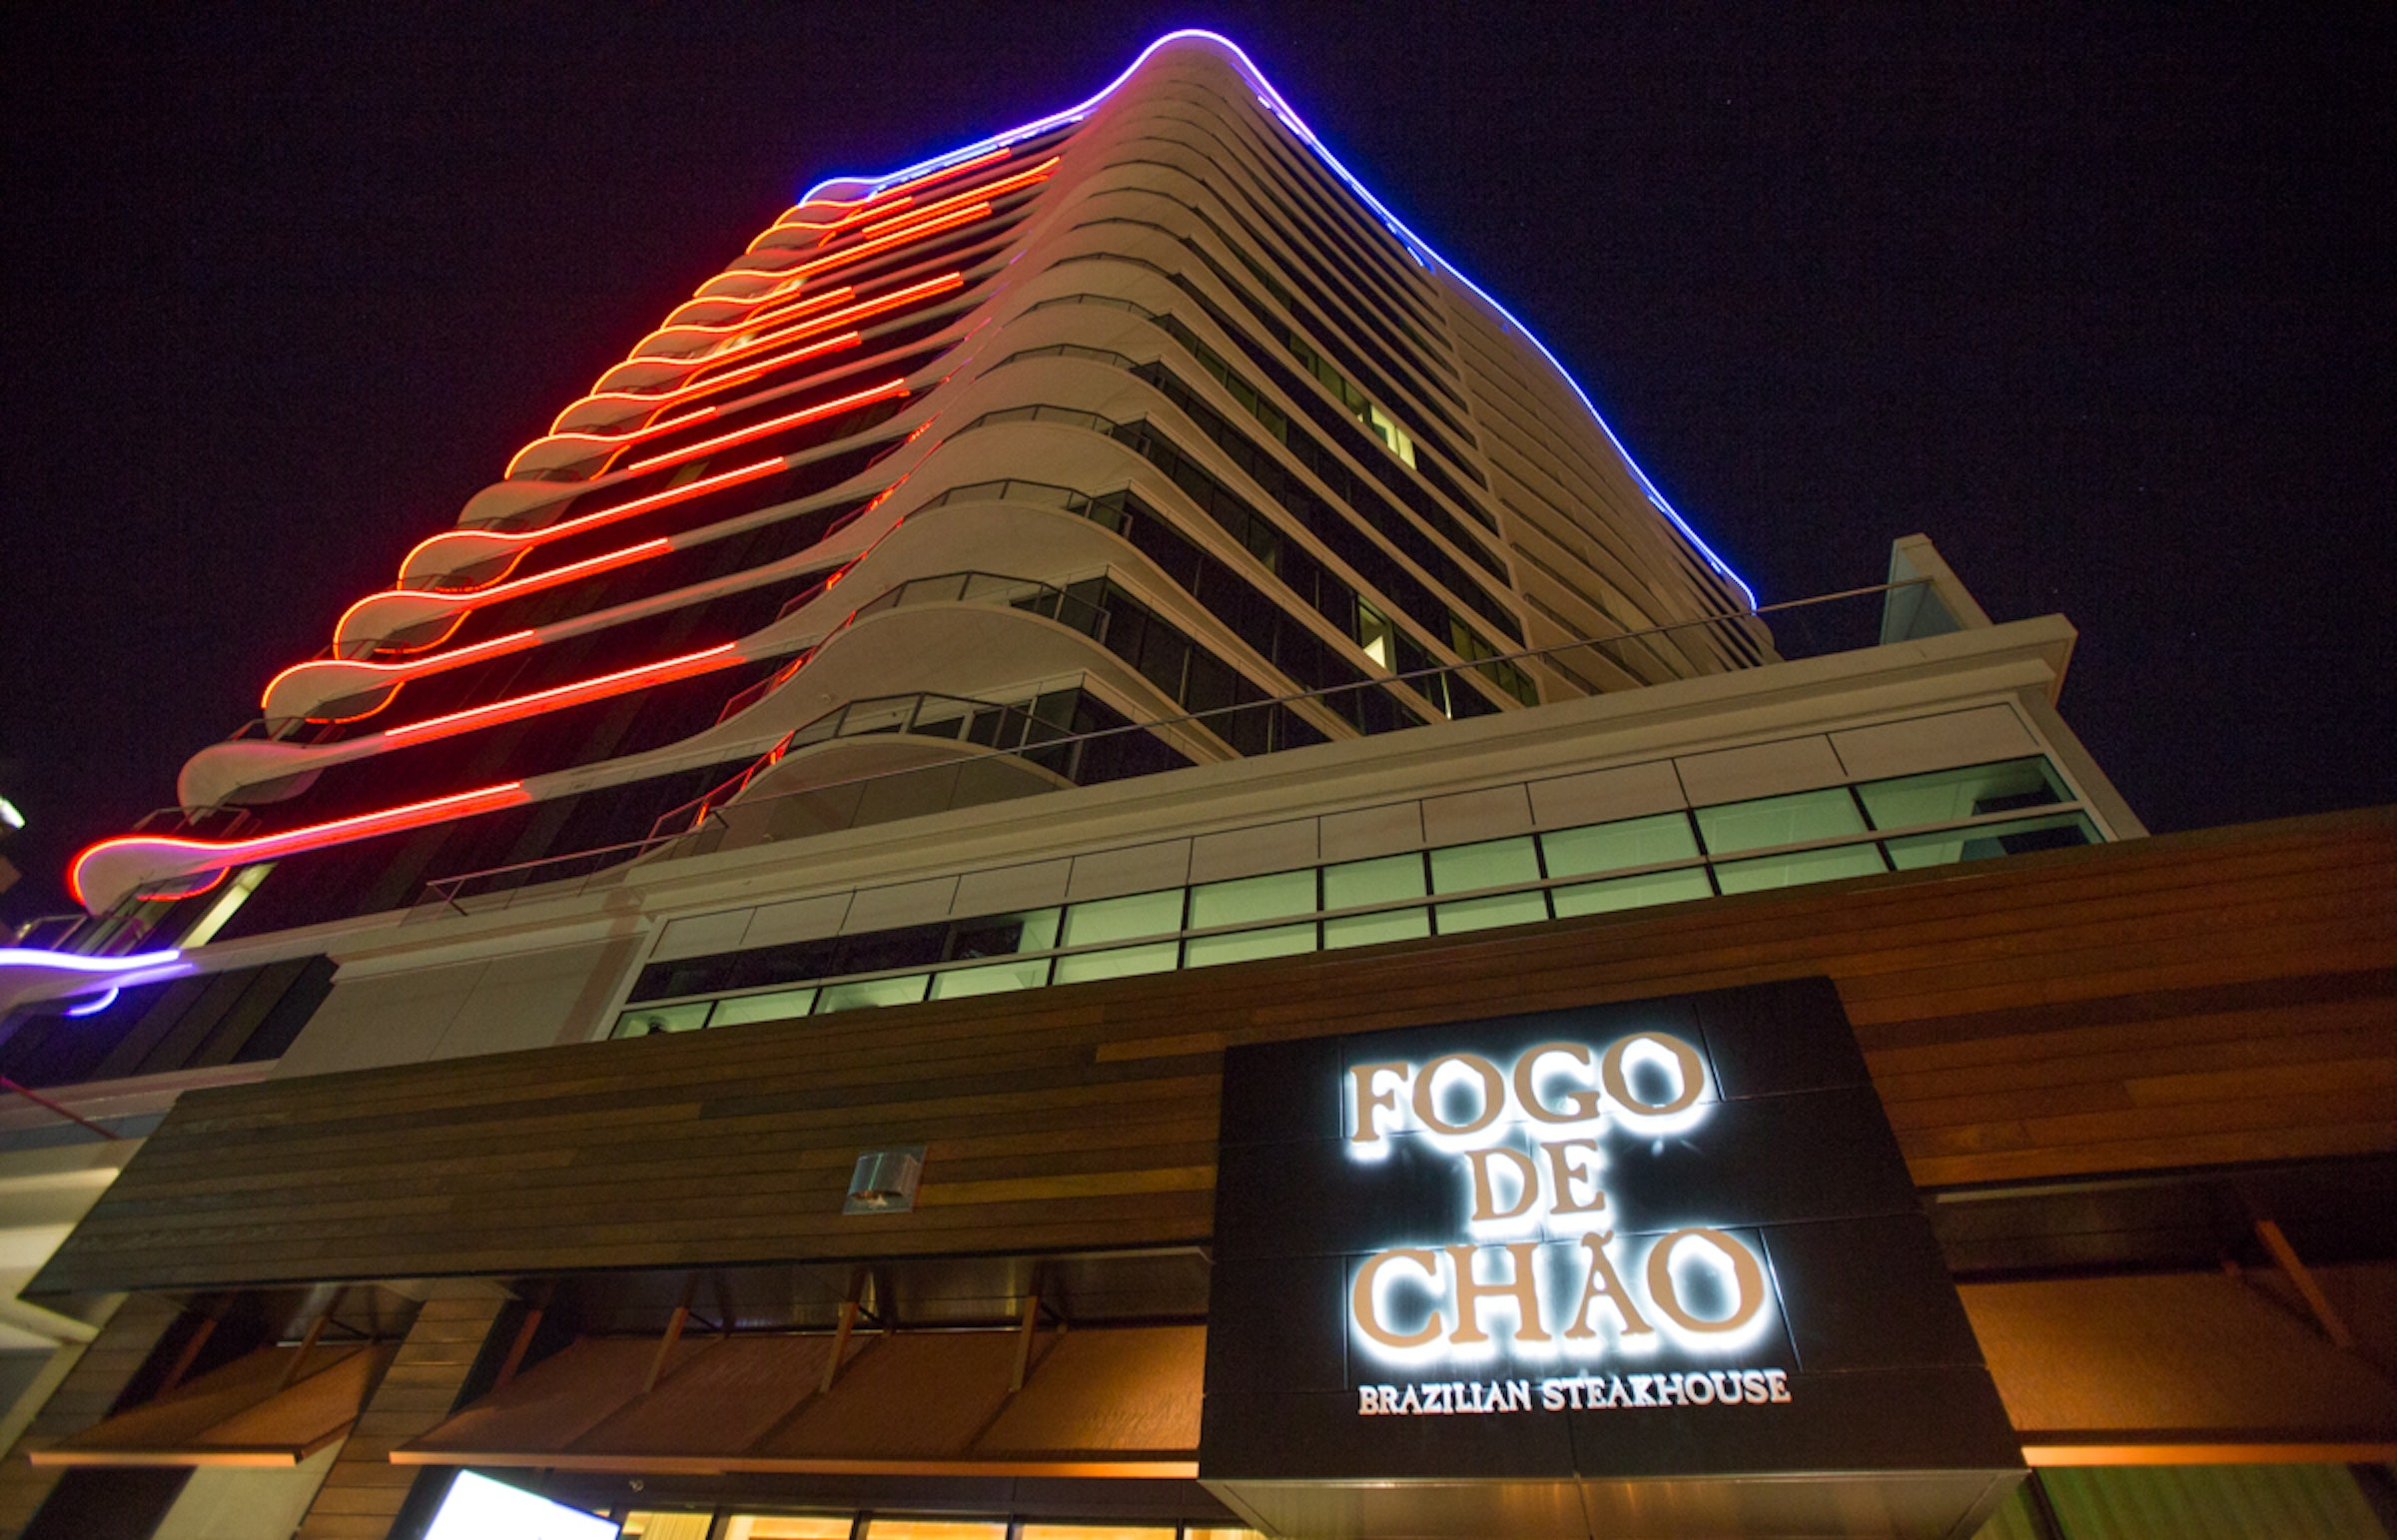 Fogo De Chao Churrascaria-Uptown in Beyond Dallas